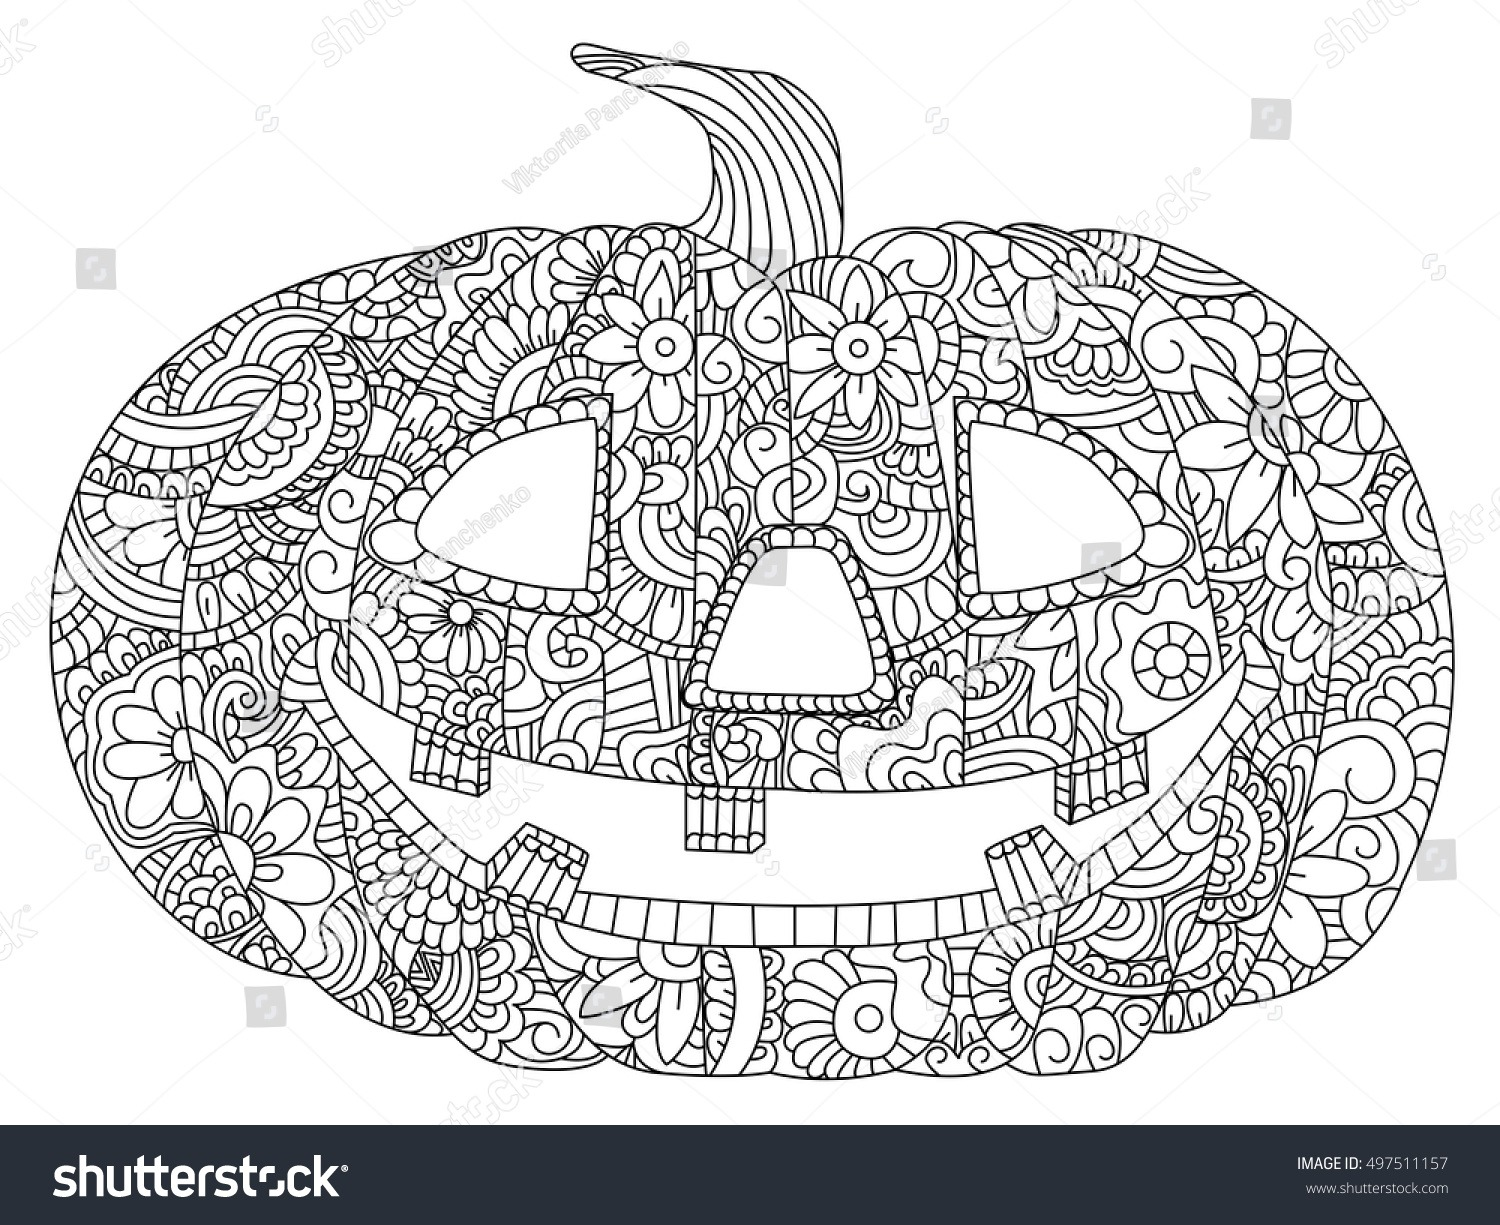 Pumpkin Halloween Coloring Book Vector Illustration Stock Vector